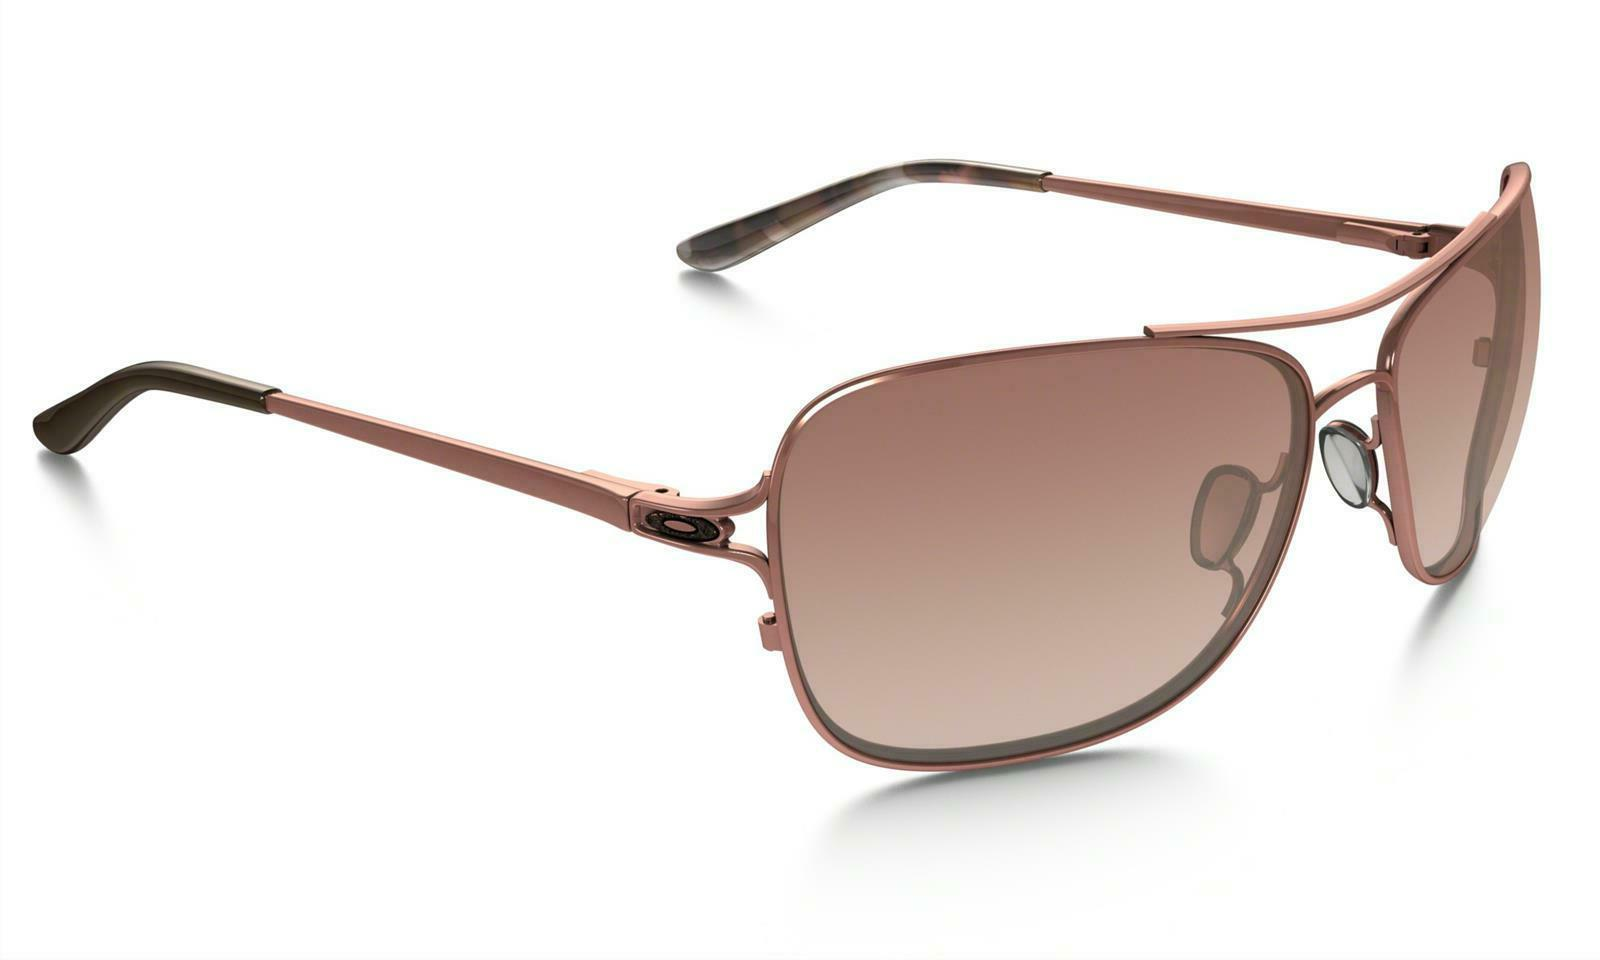 conquest sunglasses women s polished rose gold